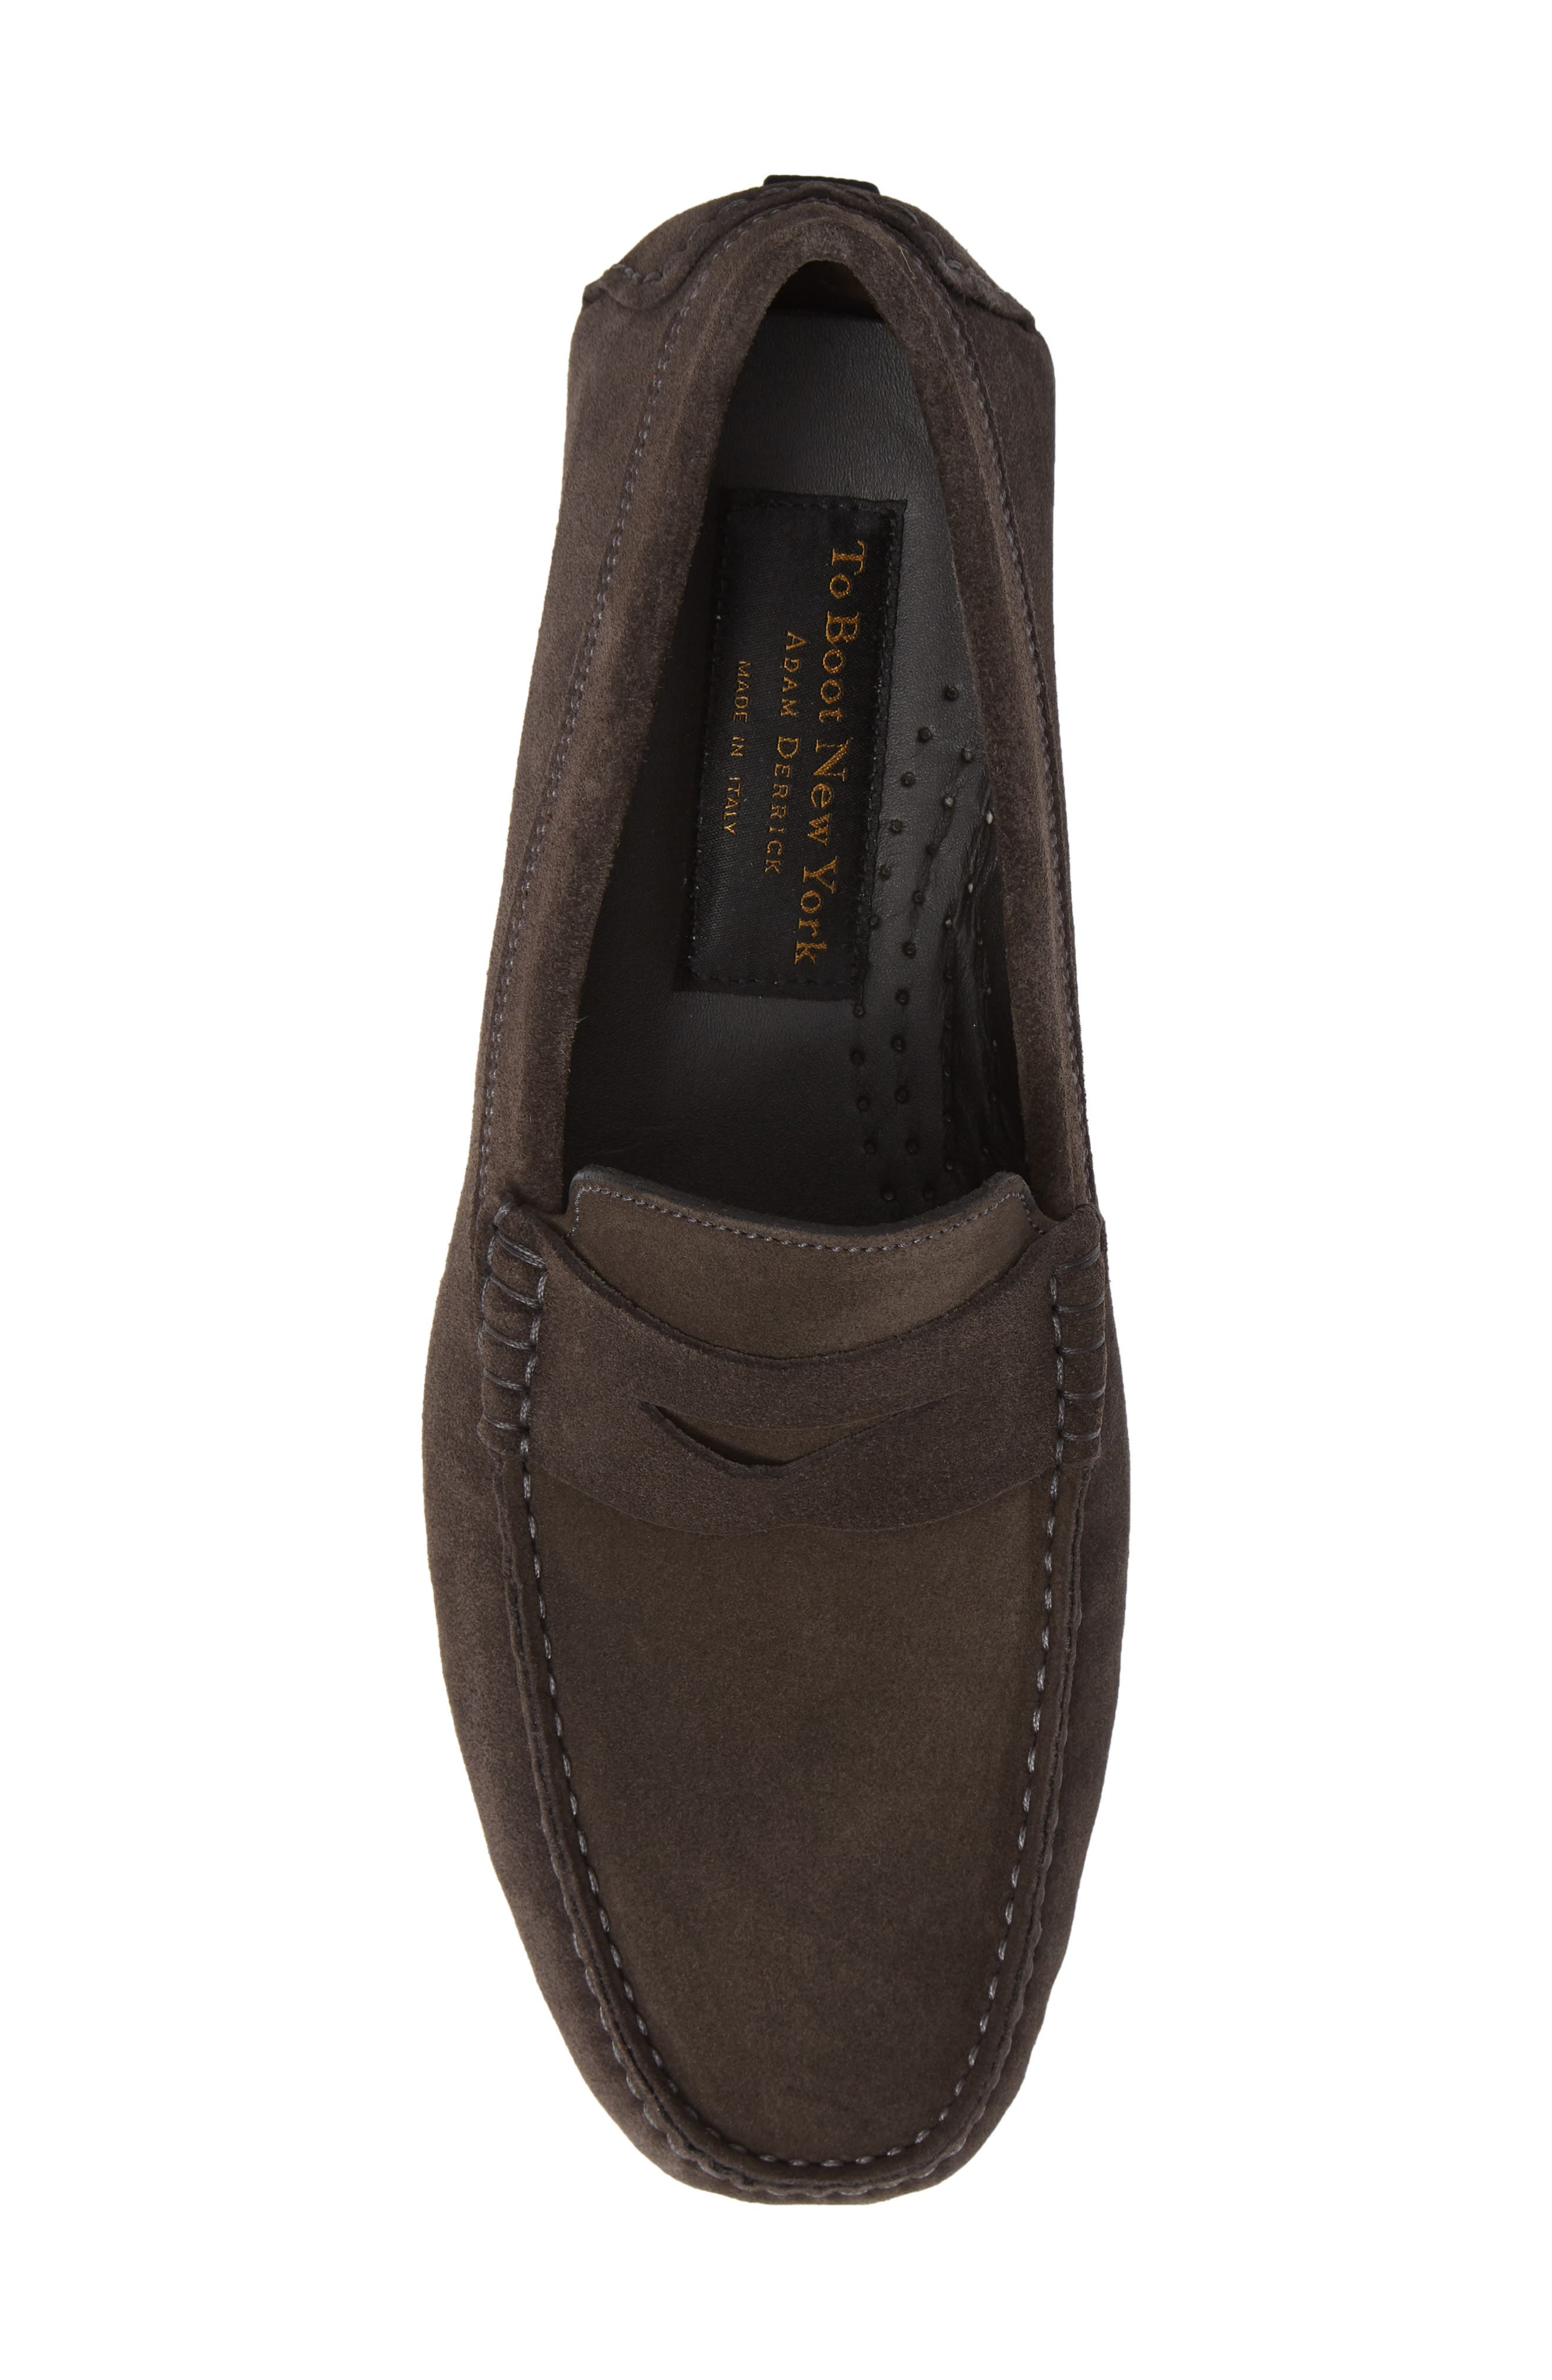 Jackson Penny Driving Loafer,                             Alternate thumbnail 5, color,                             GREY LEATHER